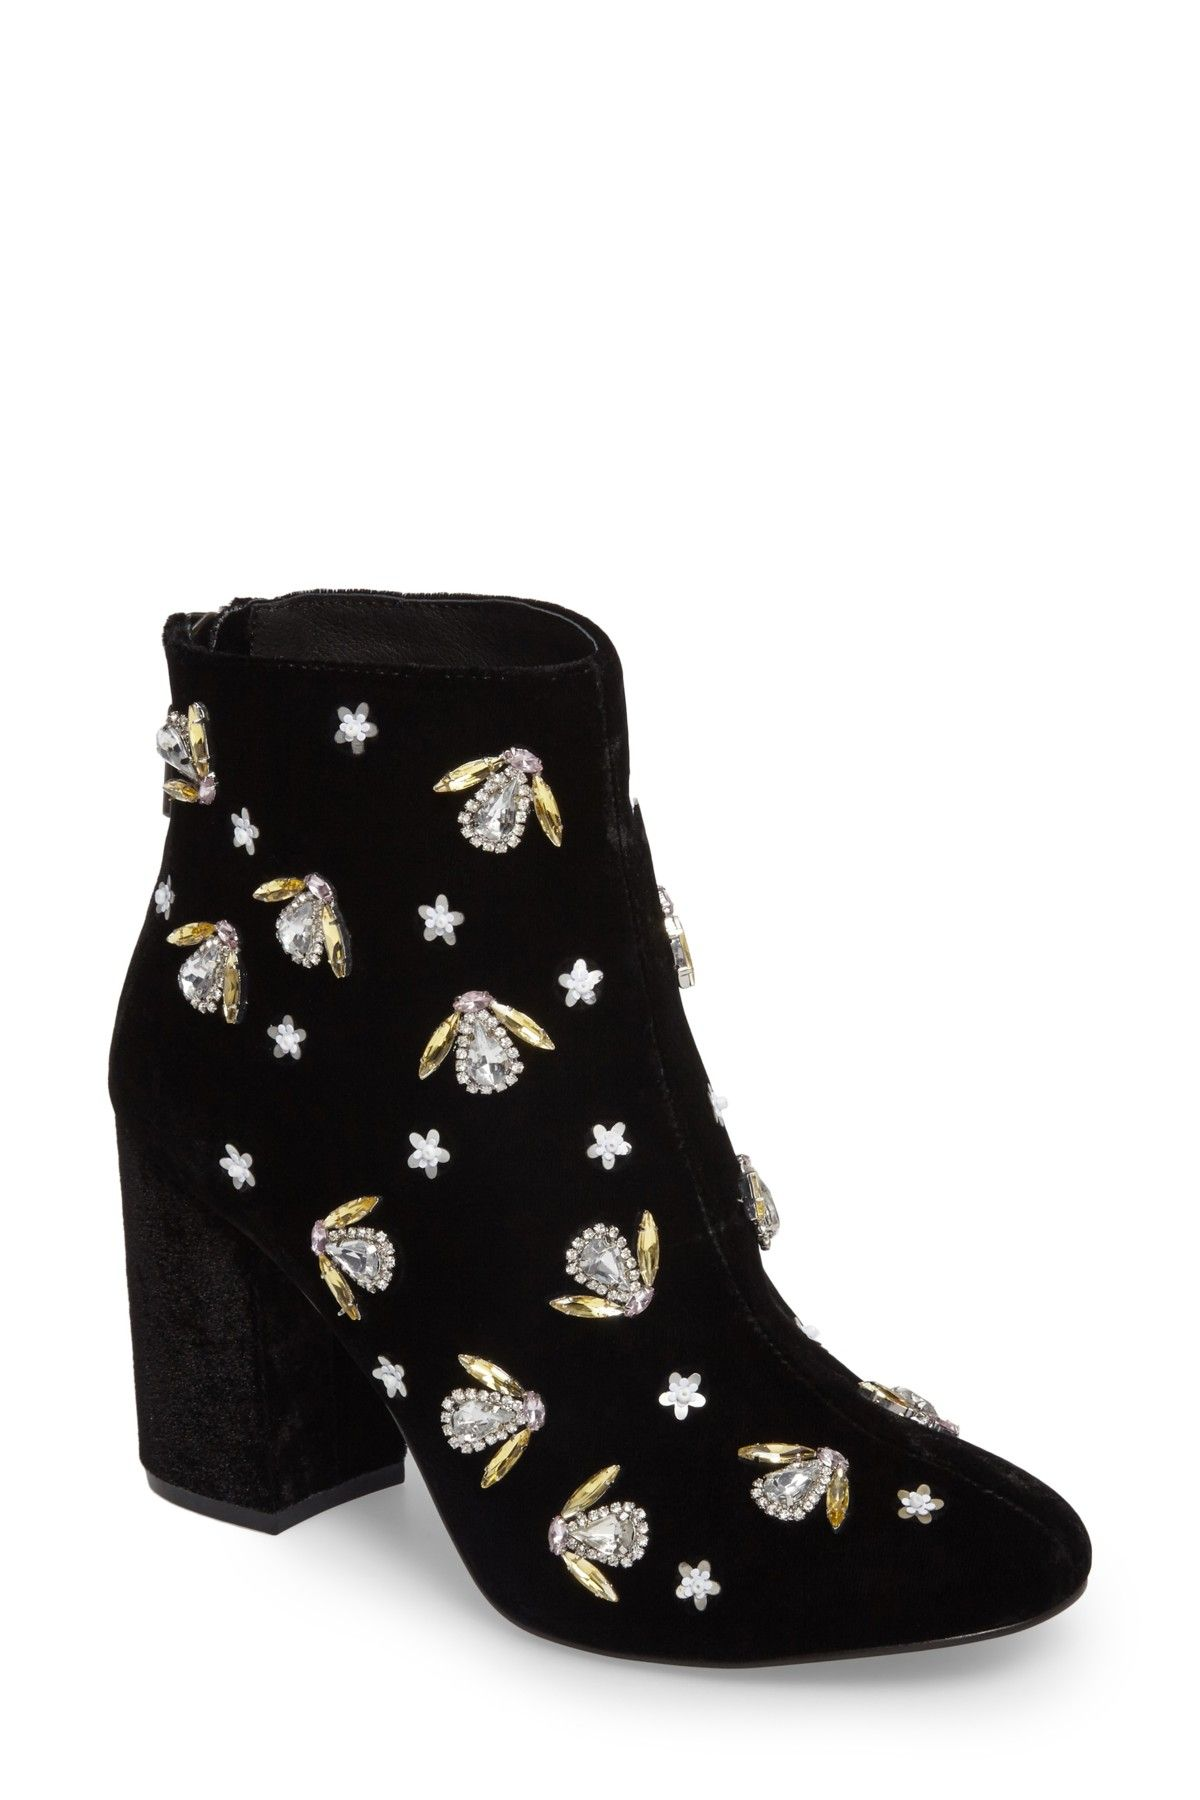 062dc160f79 Caylee 2 Bee Embellished Bootie by Kenneth Cole New York on  nordstrom rack